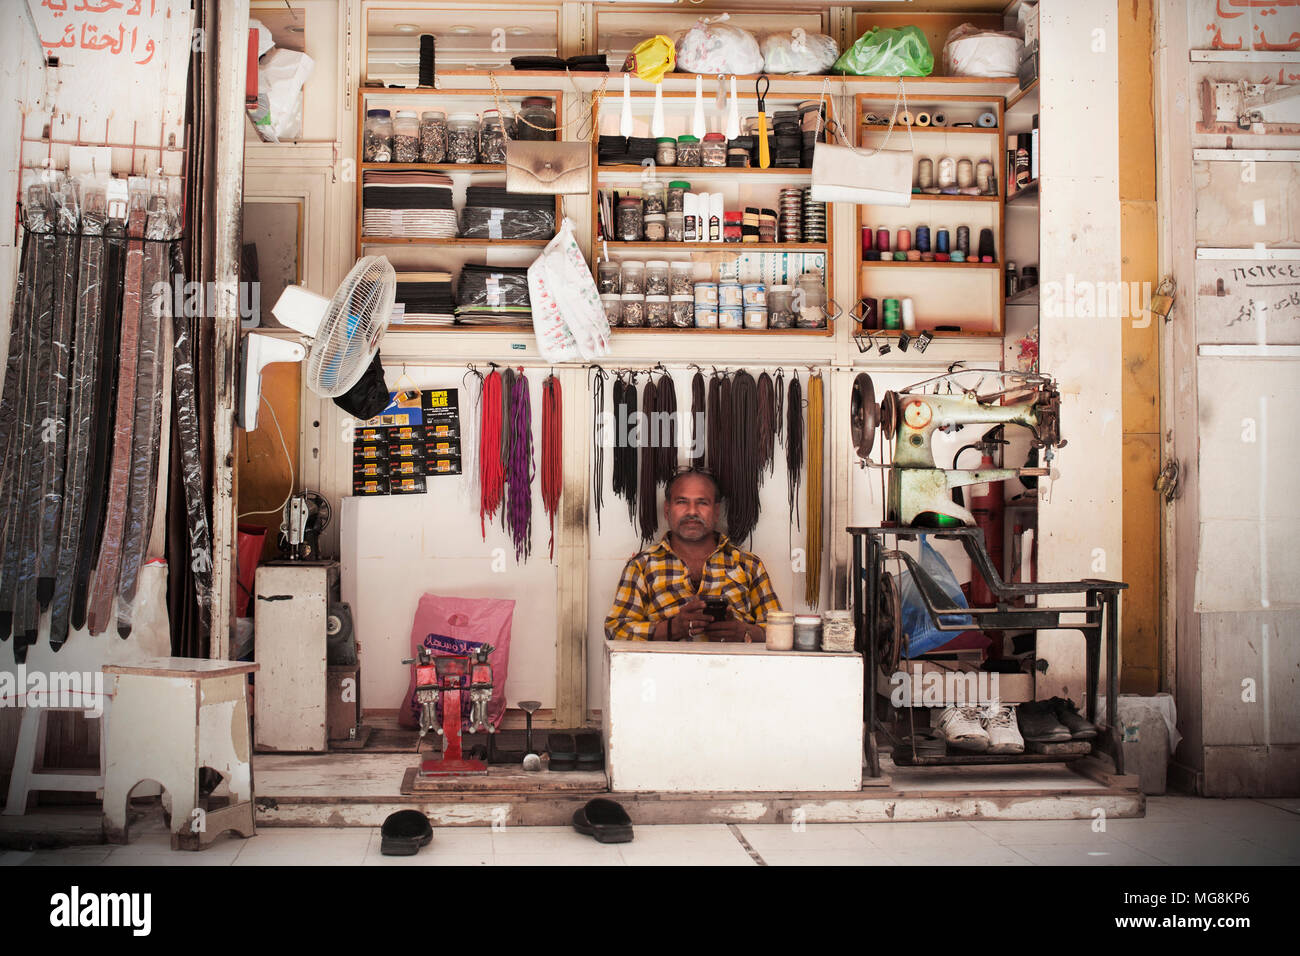 Shoe repairer in a souq in Kuwait - Stock Image